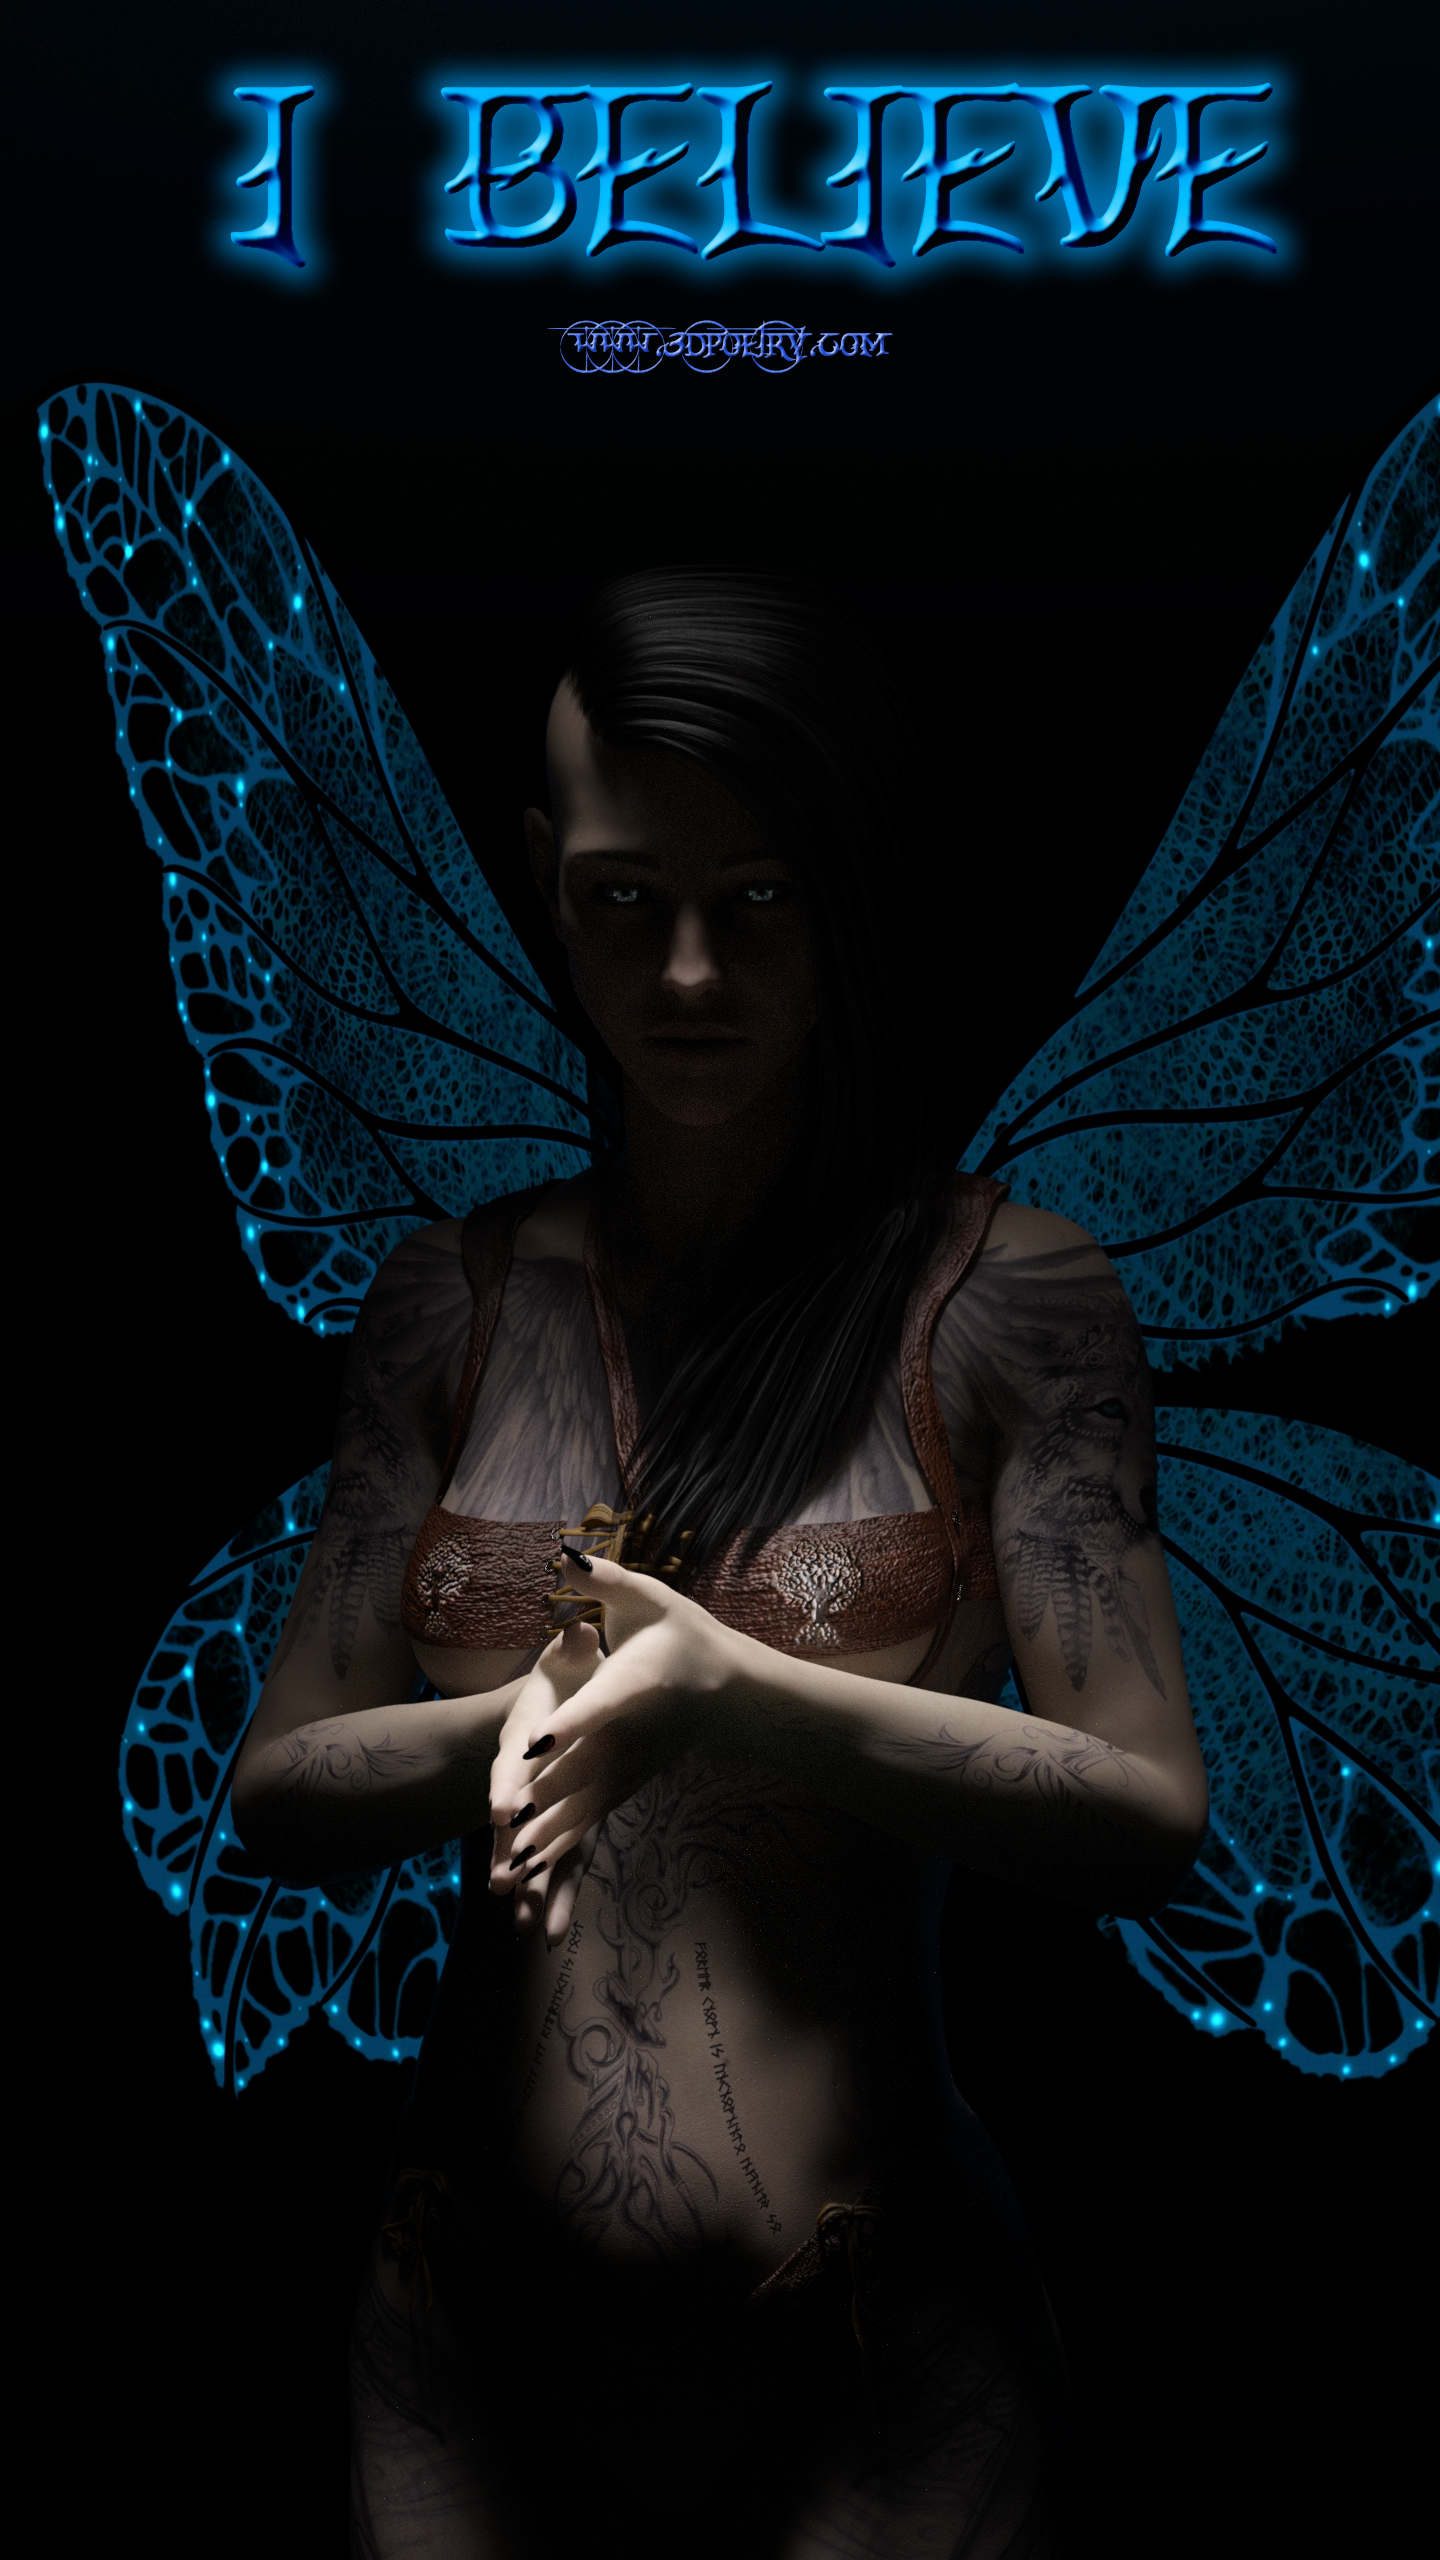 Clap your hands, and say 'I believe in fairies'.